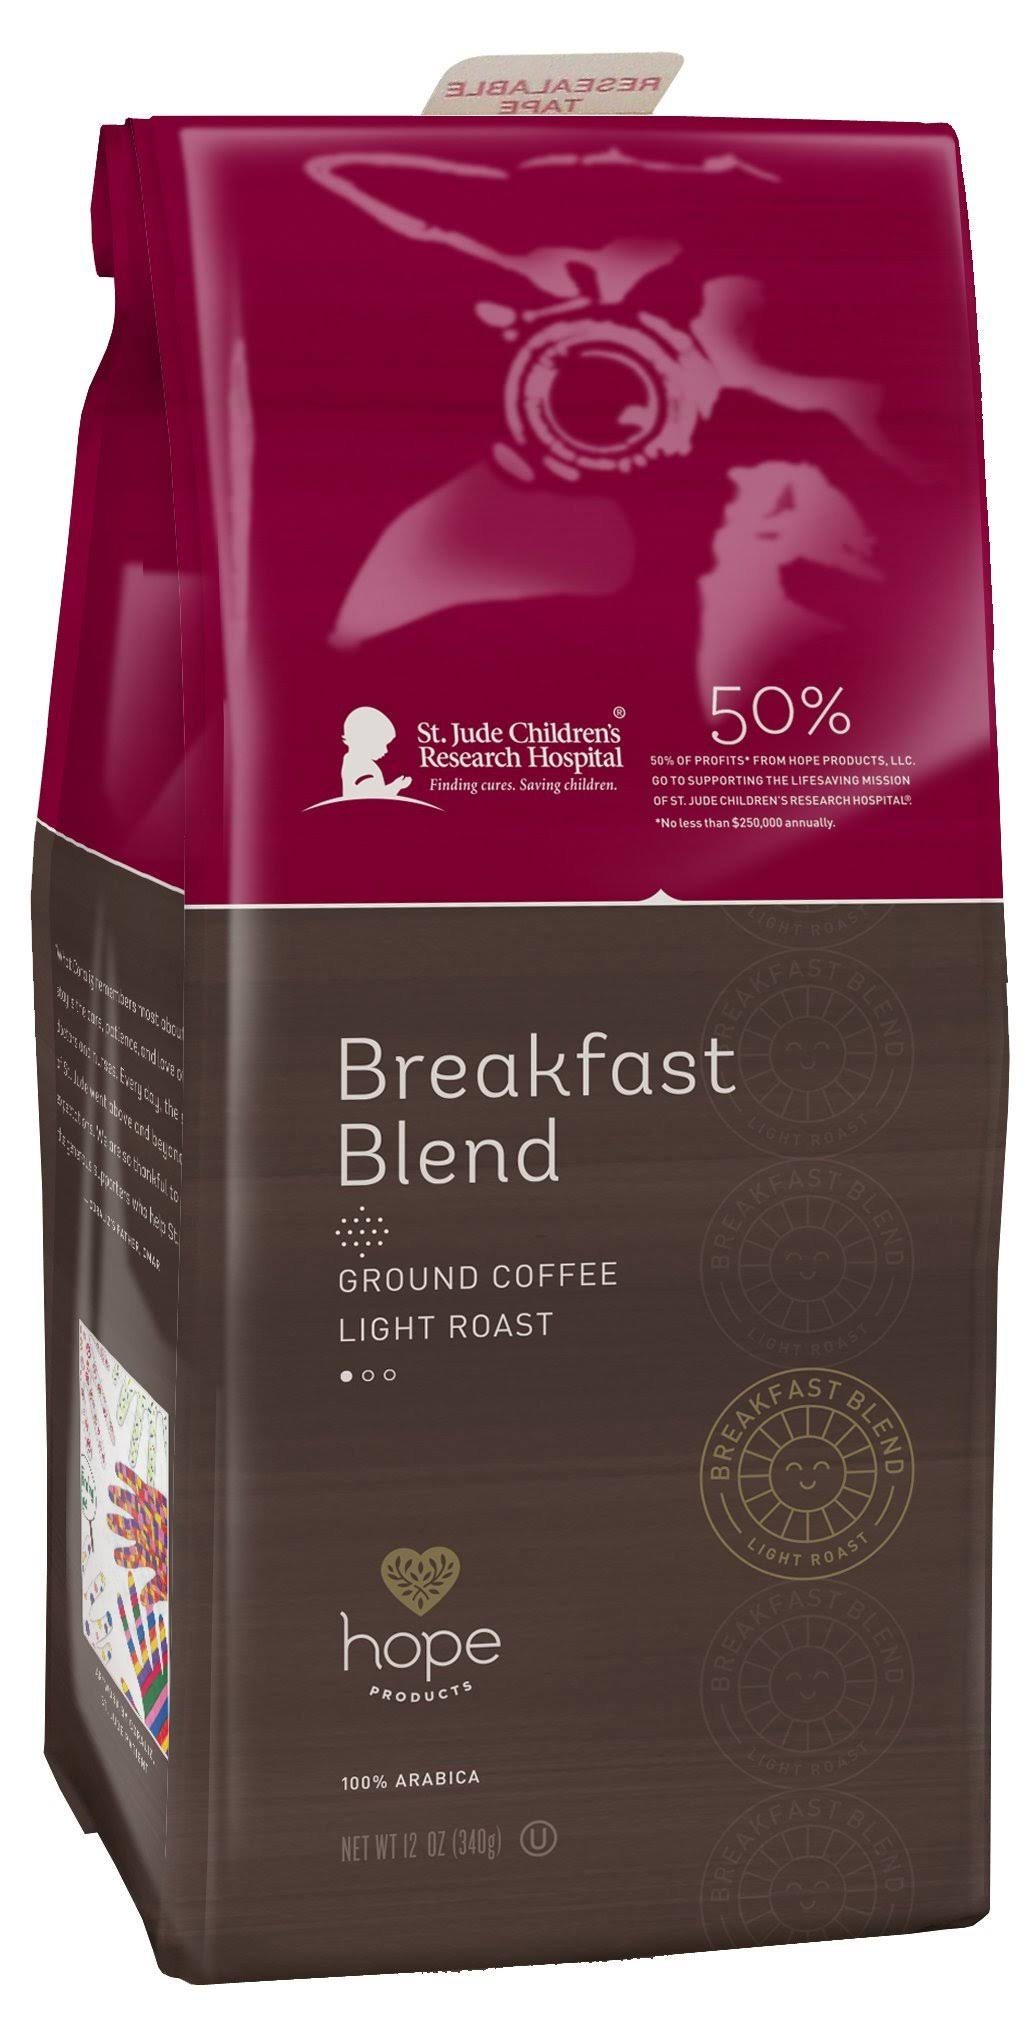 Hope Coffee Breakfast Blend Ground Coffee - 12oz